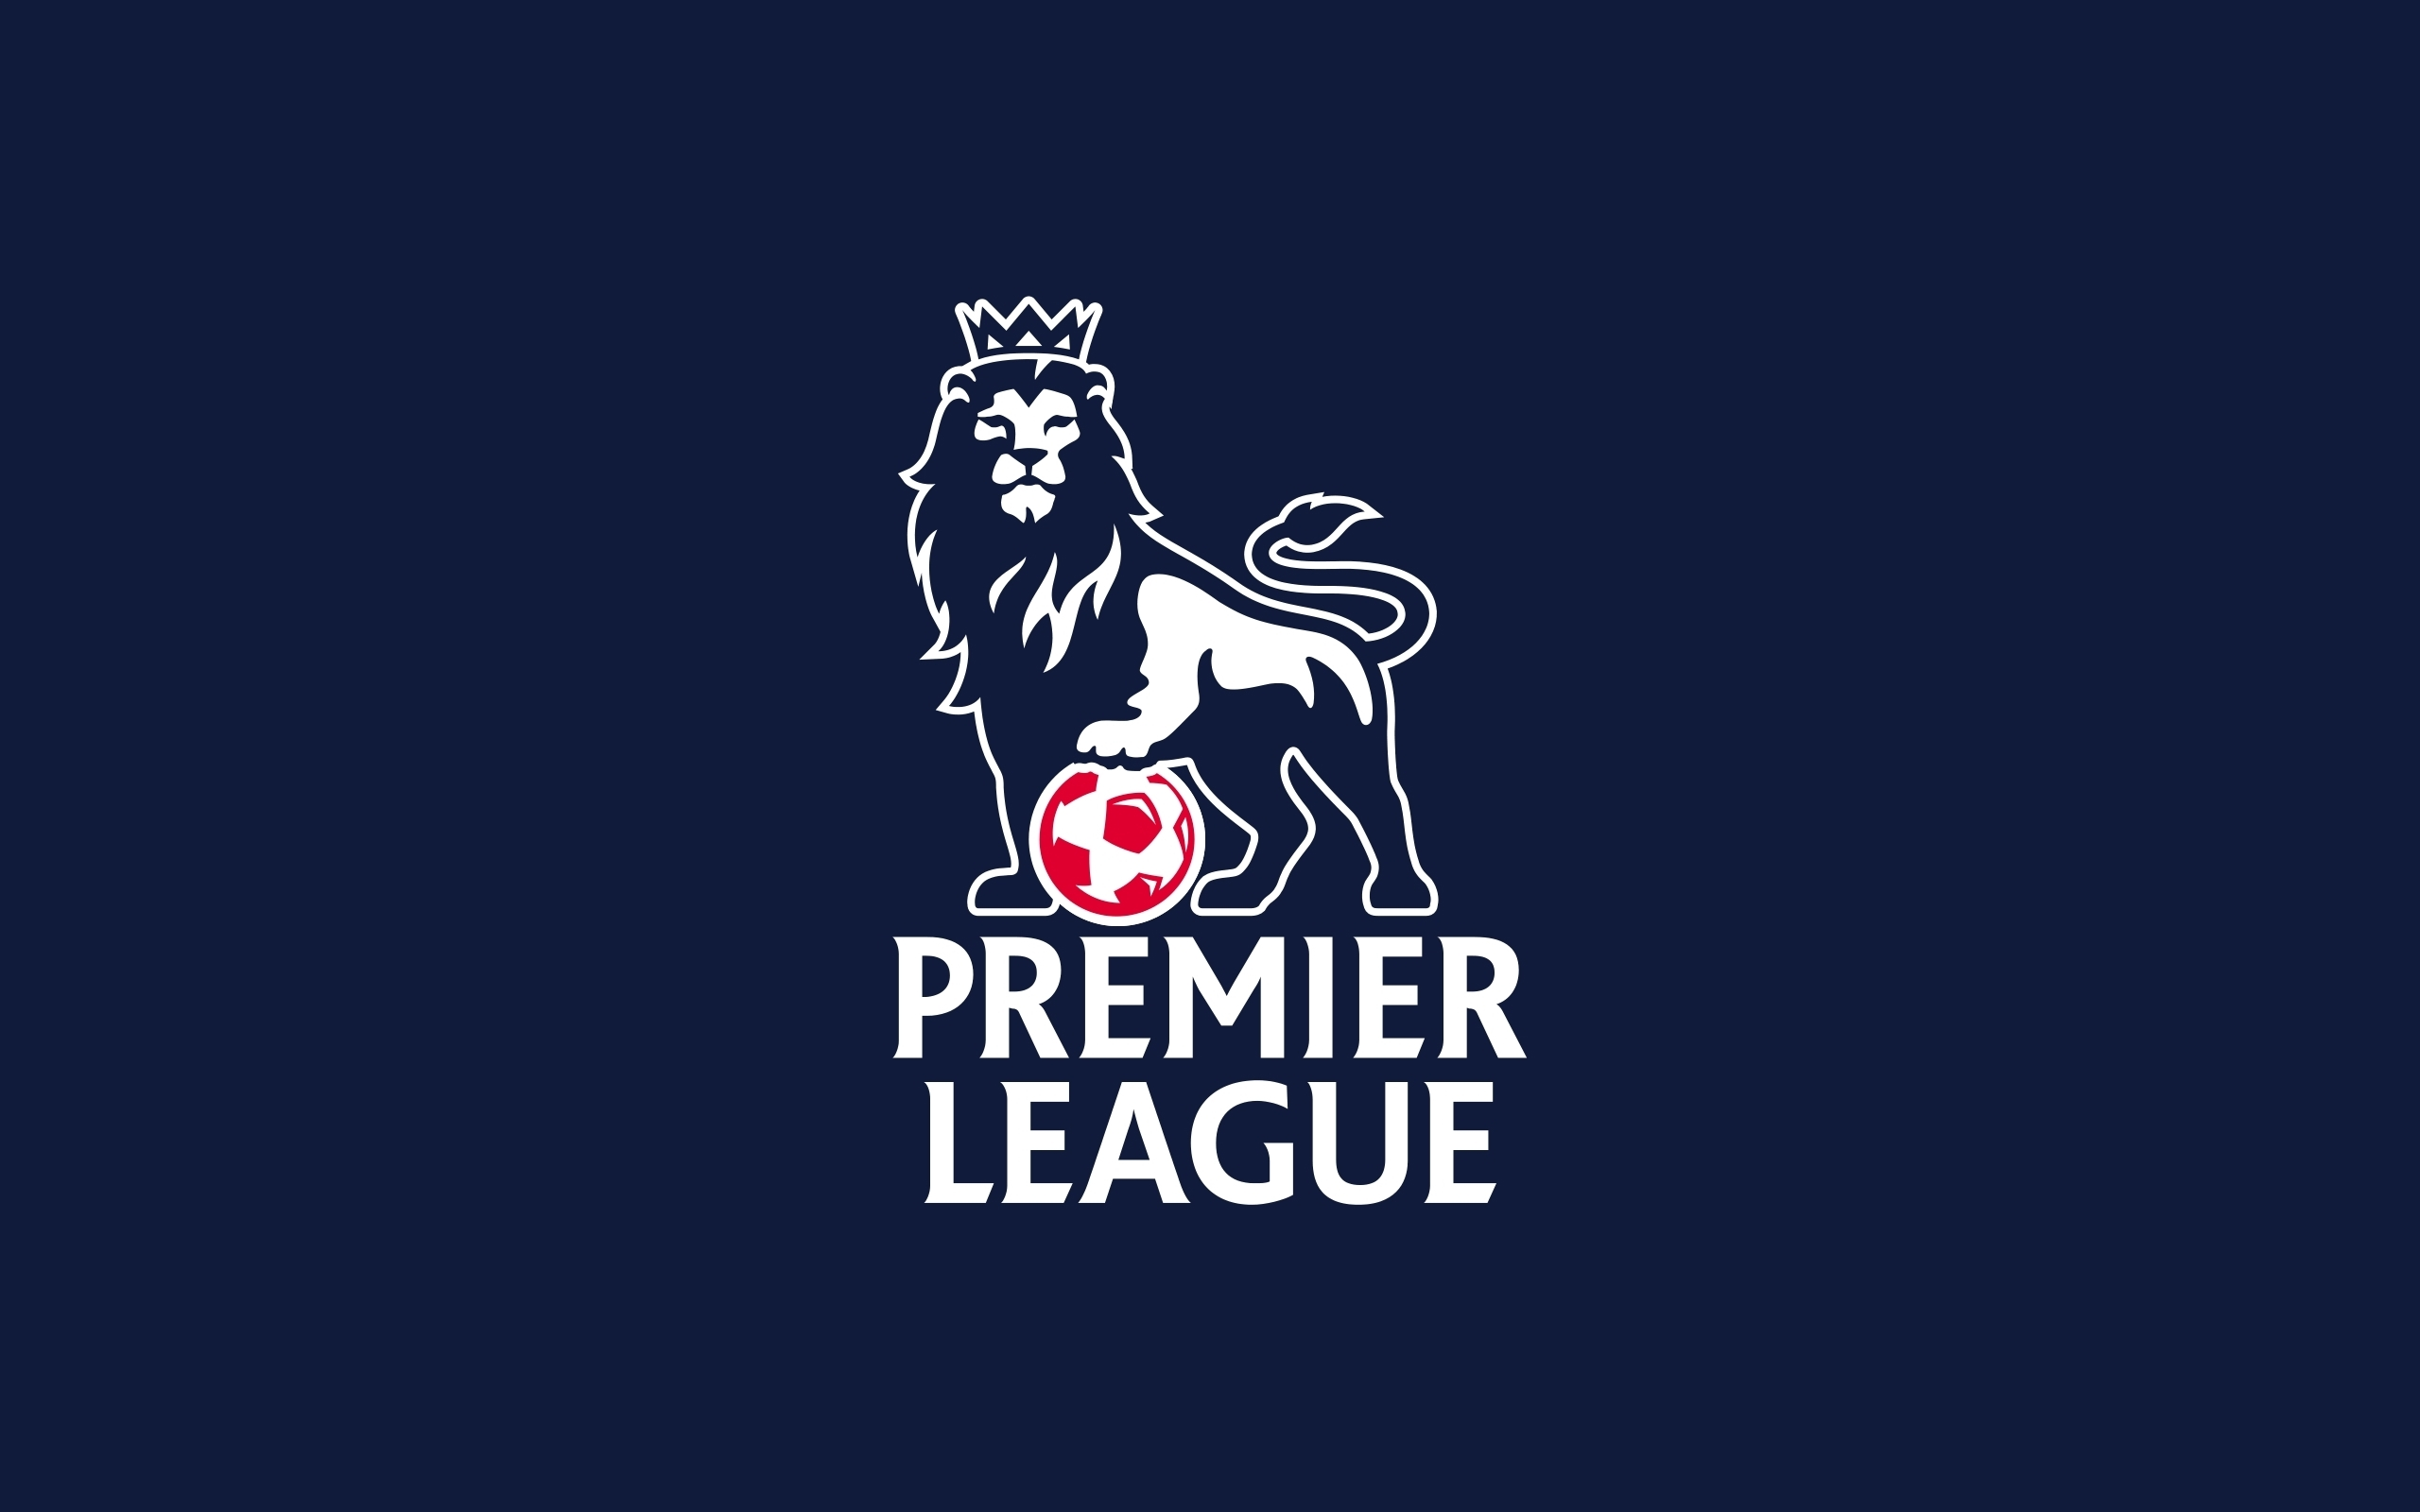 English Premier League iron ons